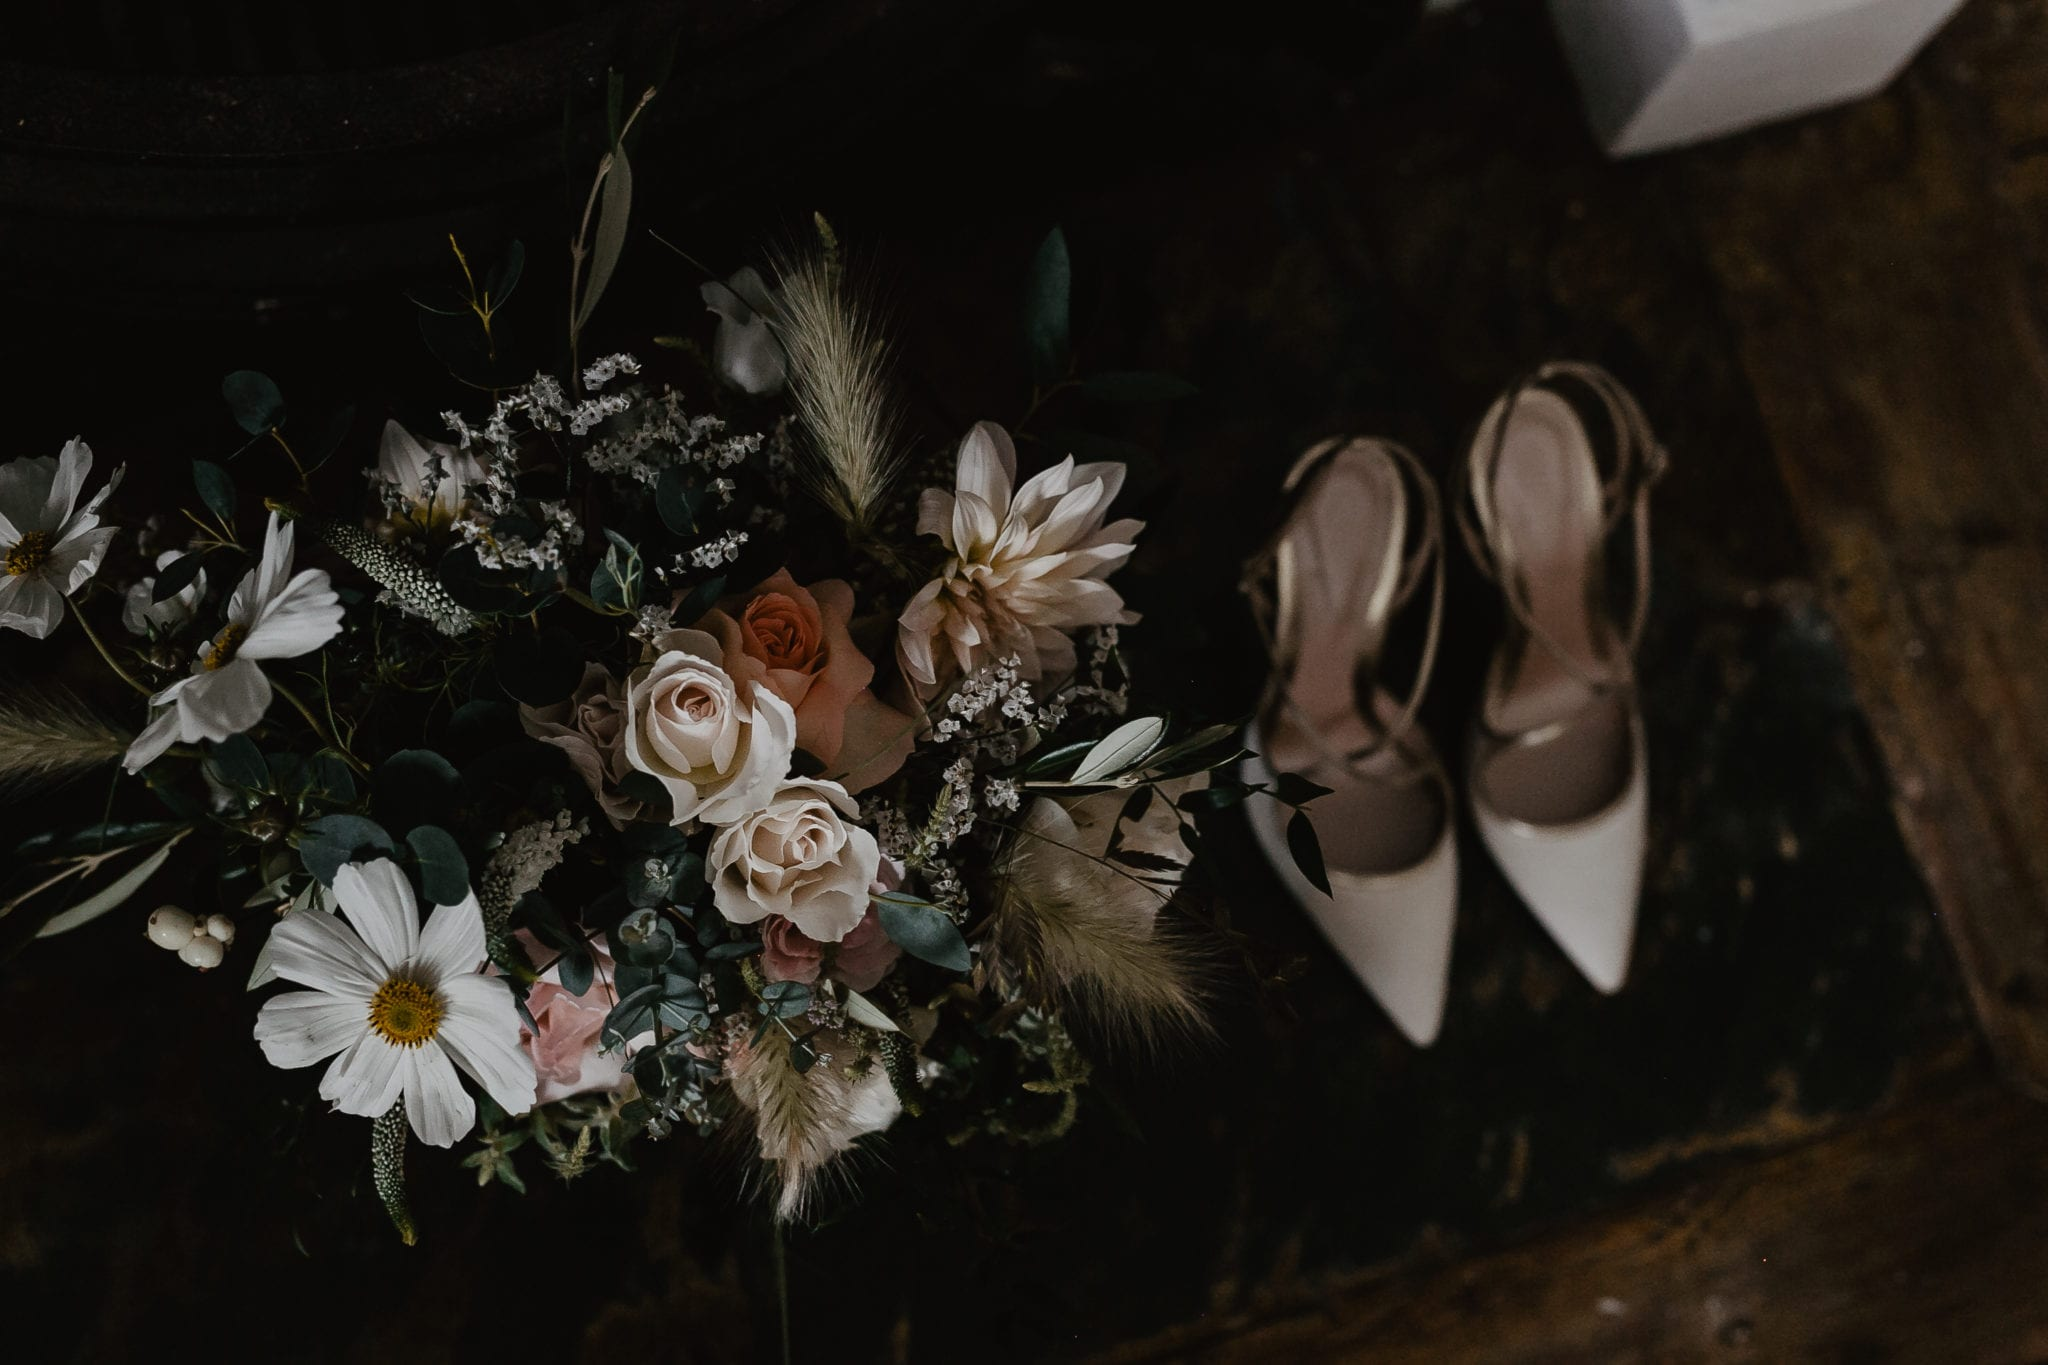 Pink and cream wedding flowers next to cream wedding shoes